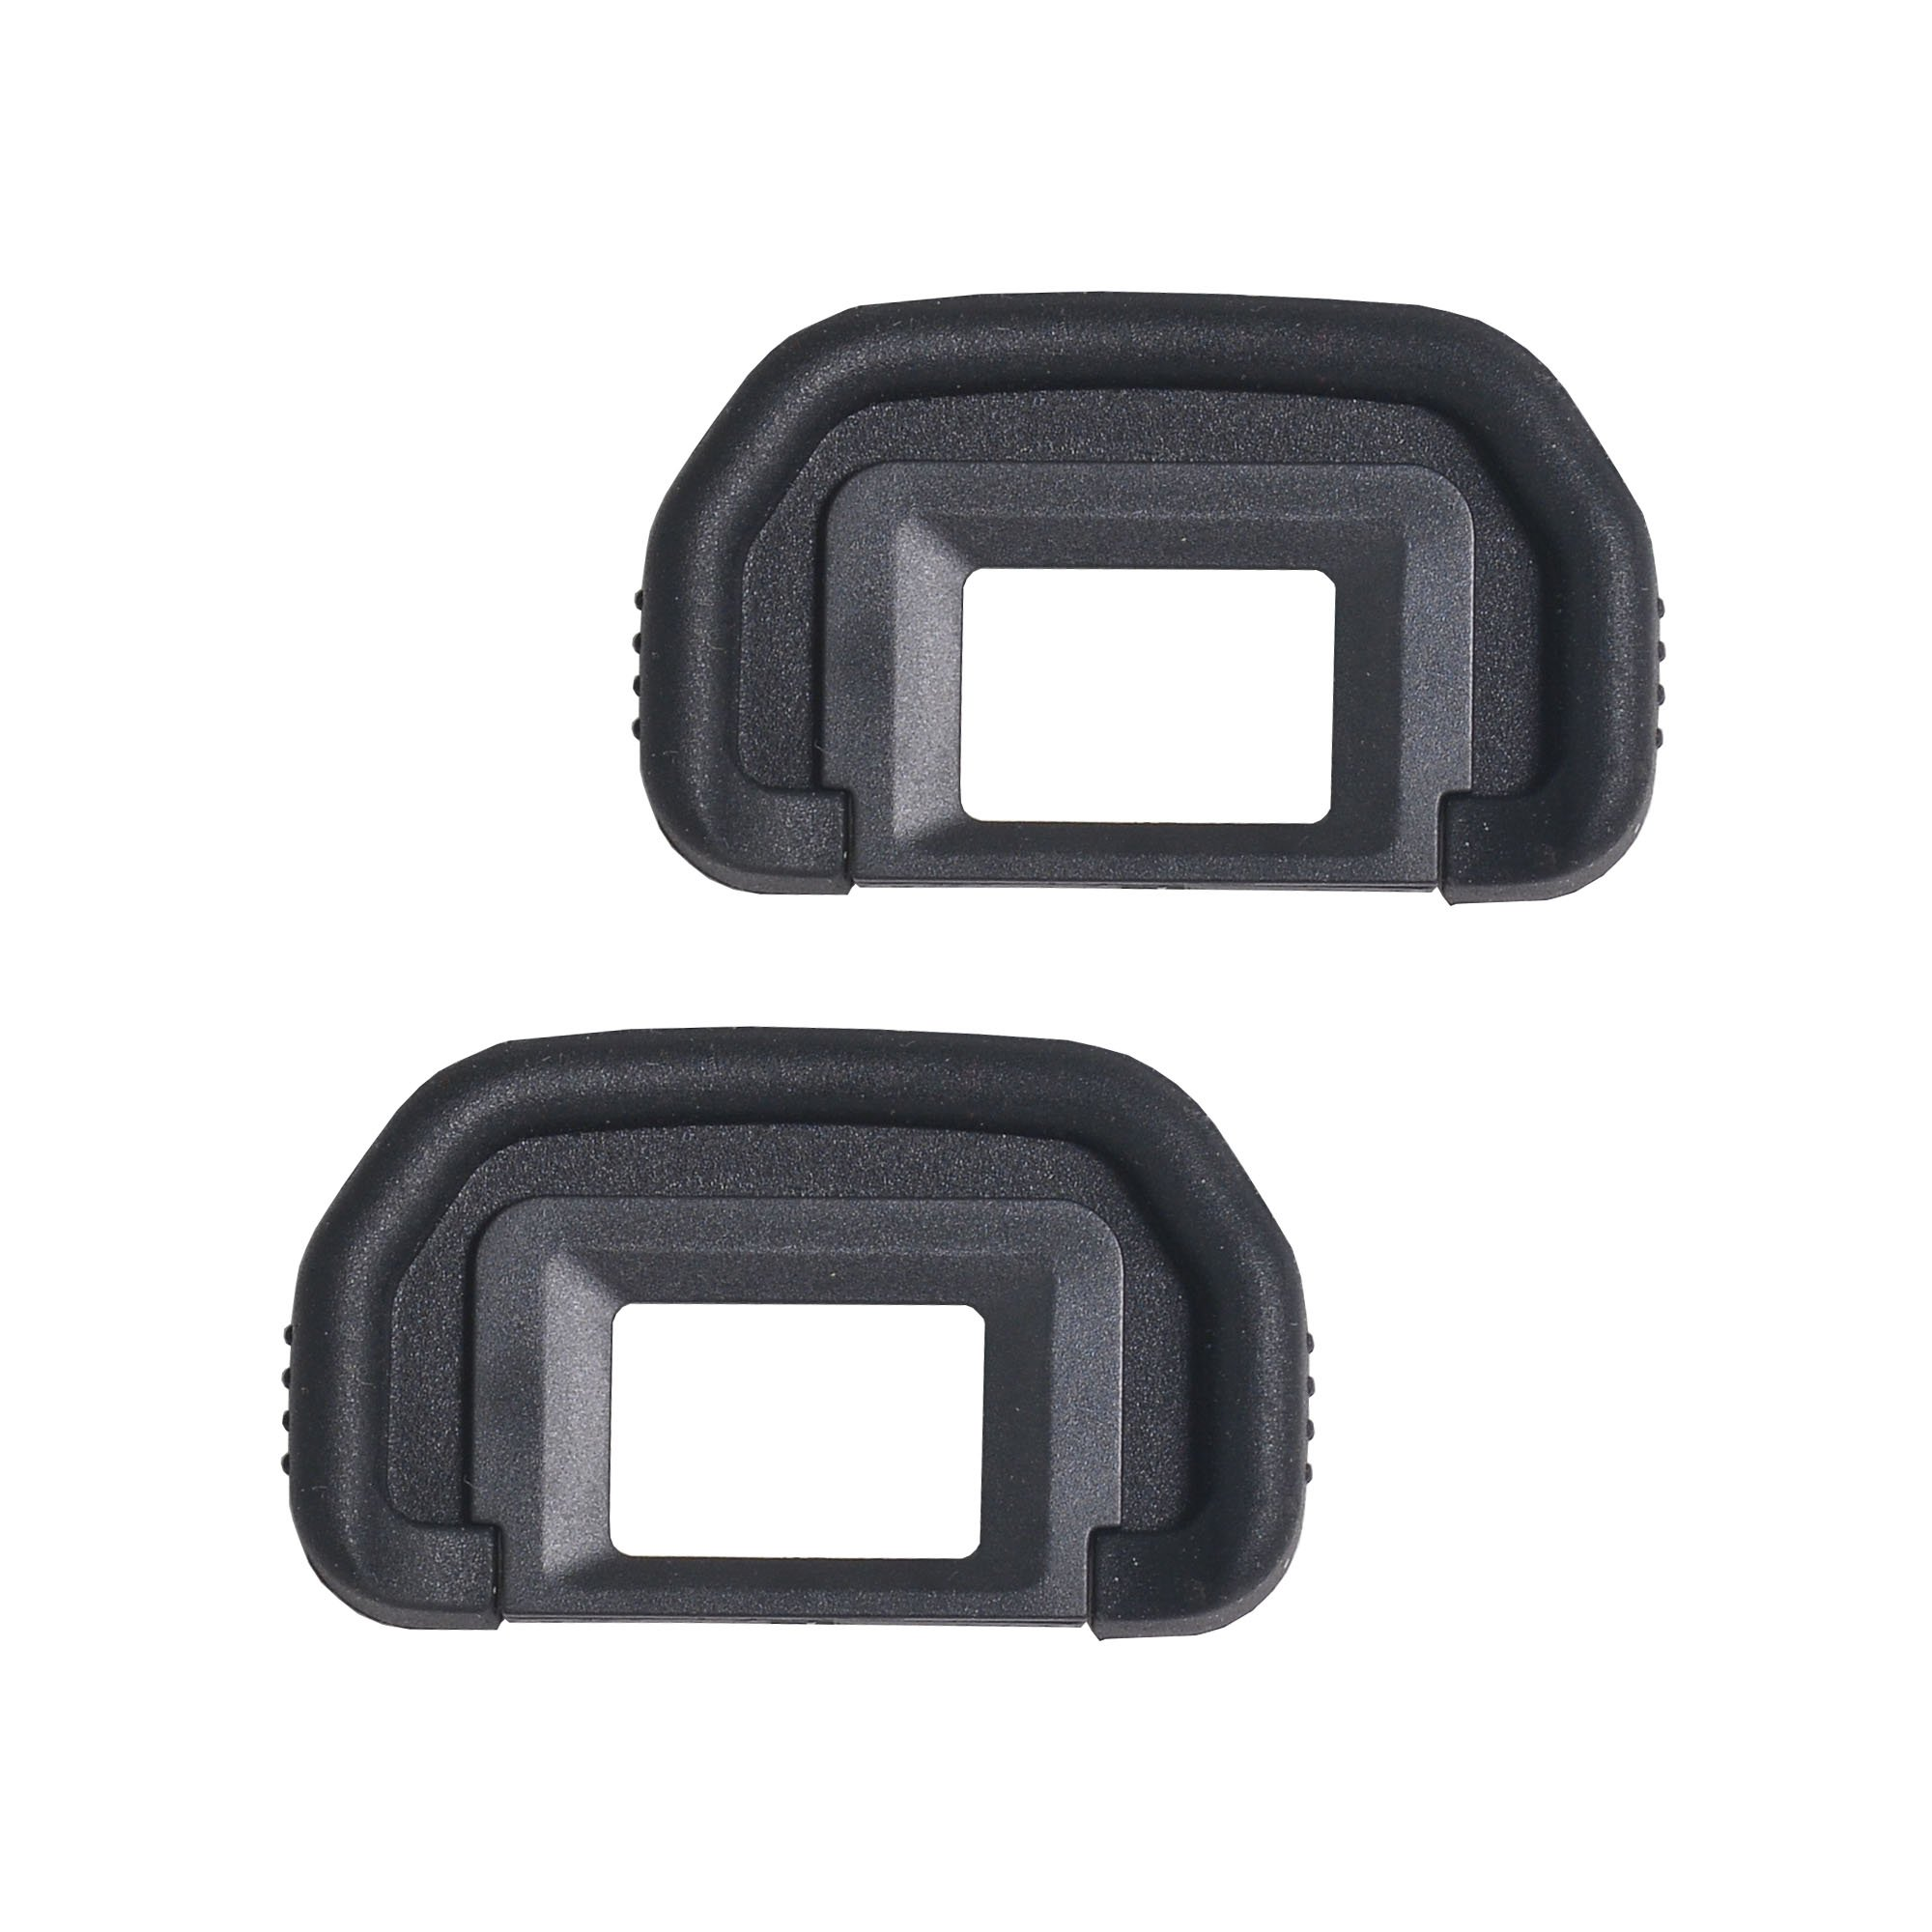 Bestshoot [2 Pack] EF Viewfinder Eyepiece Eyecup Eye Cup Rubbe Compatible with Canon EOS 1100D 600D 550D 500D 450D 400D 350D 300D T6s T6i T6 T5i T5 T4i T3i T3 T2i XTi XSi XS DSLR Cameras